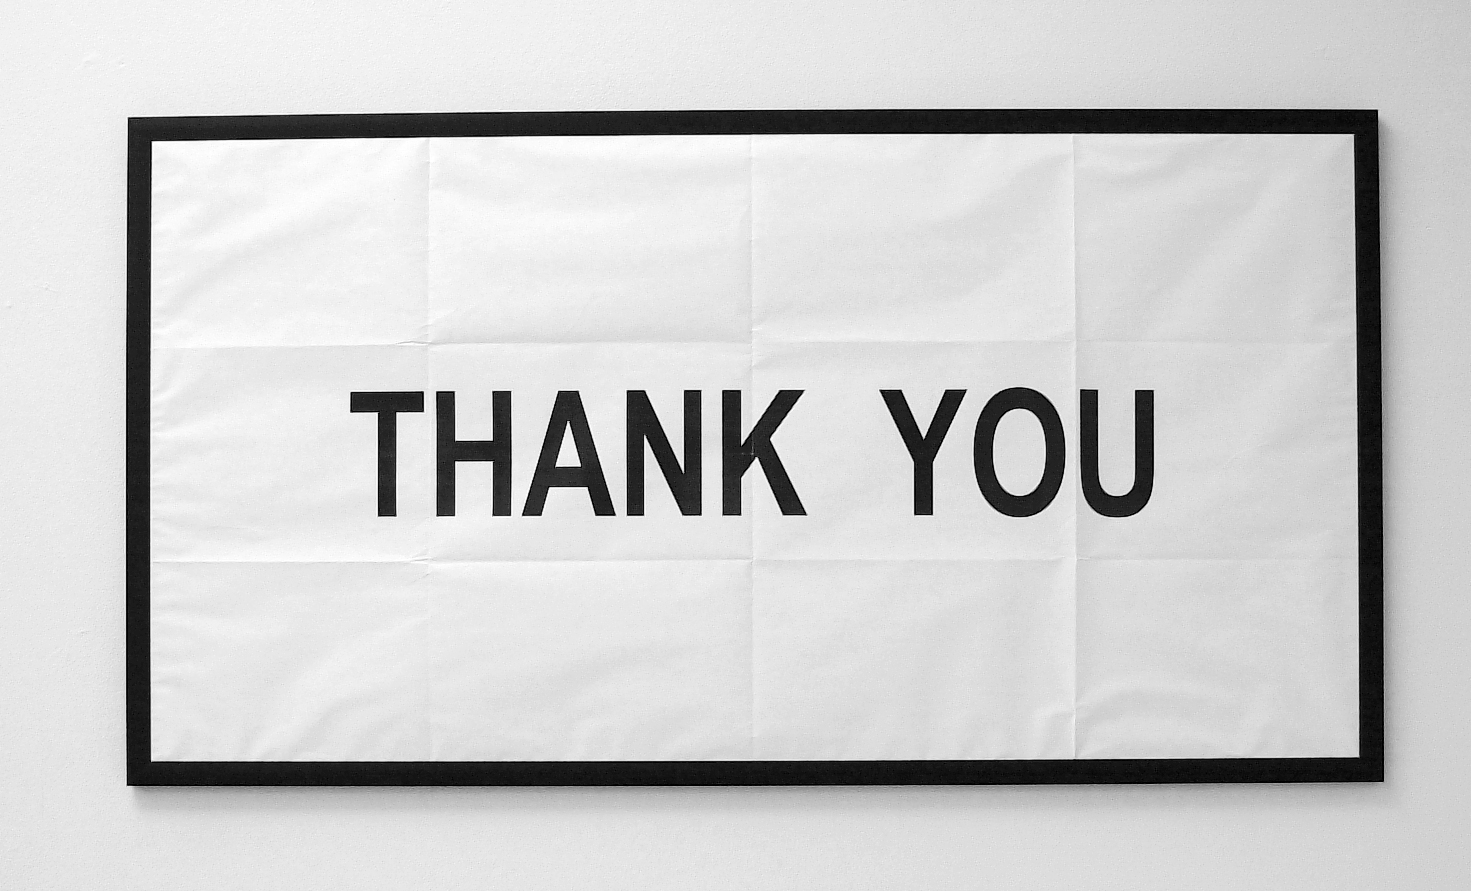 Thank You, 2005 |  | ProjecteSD